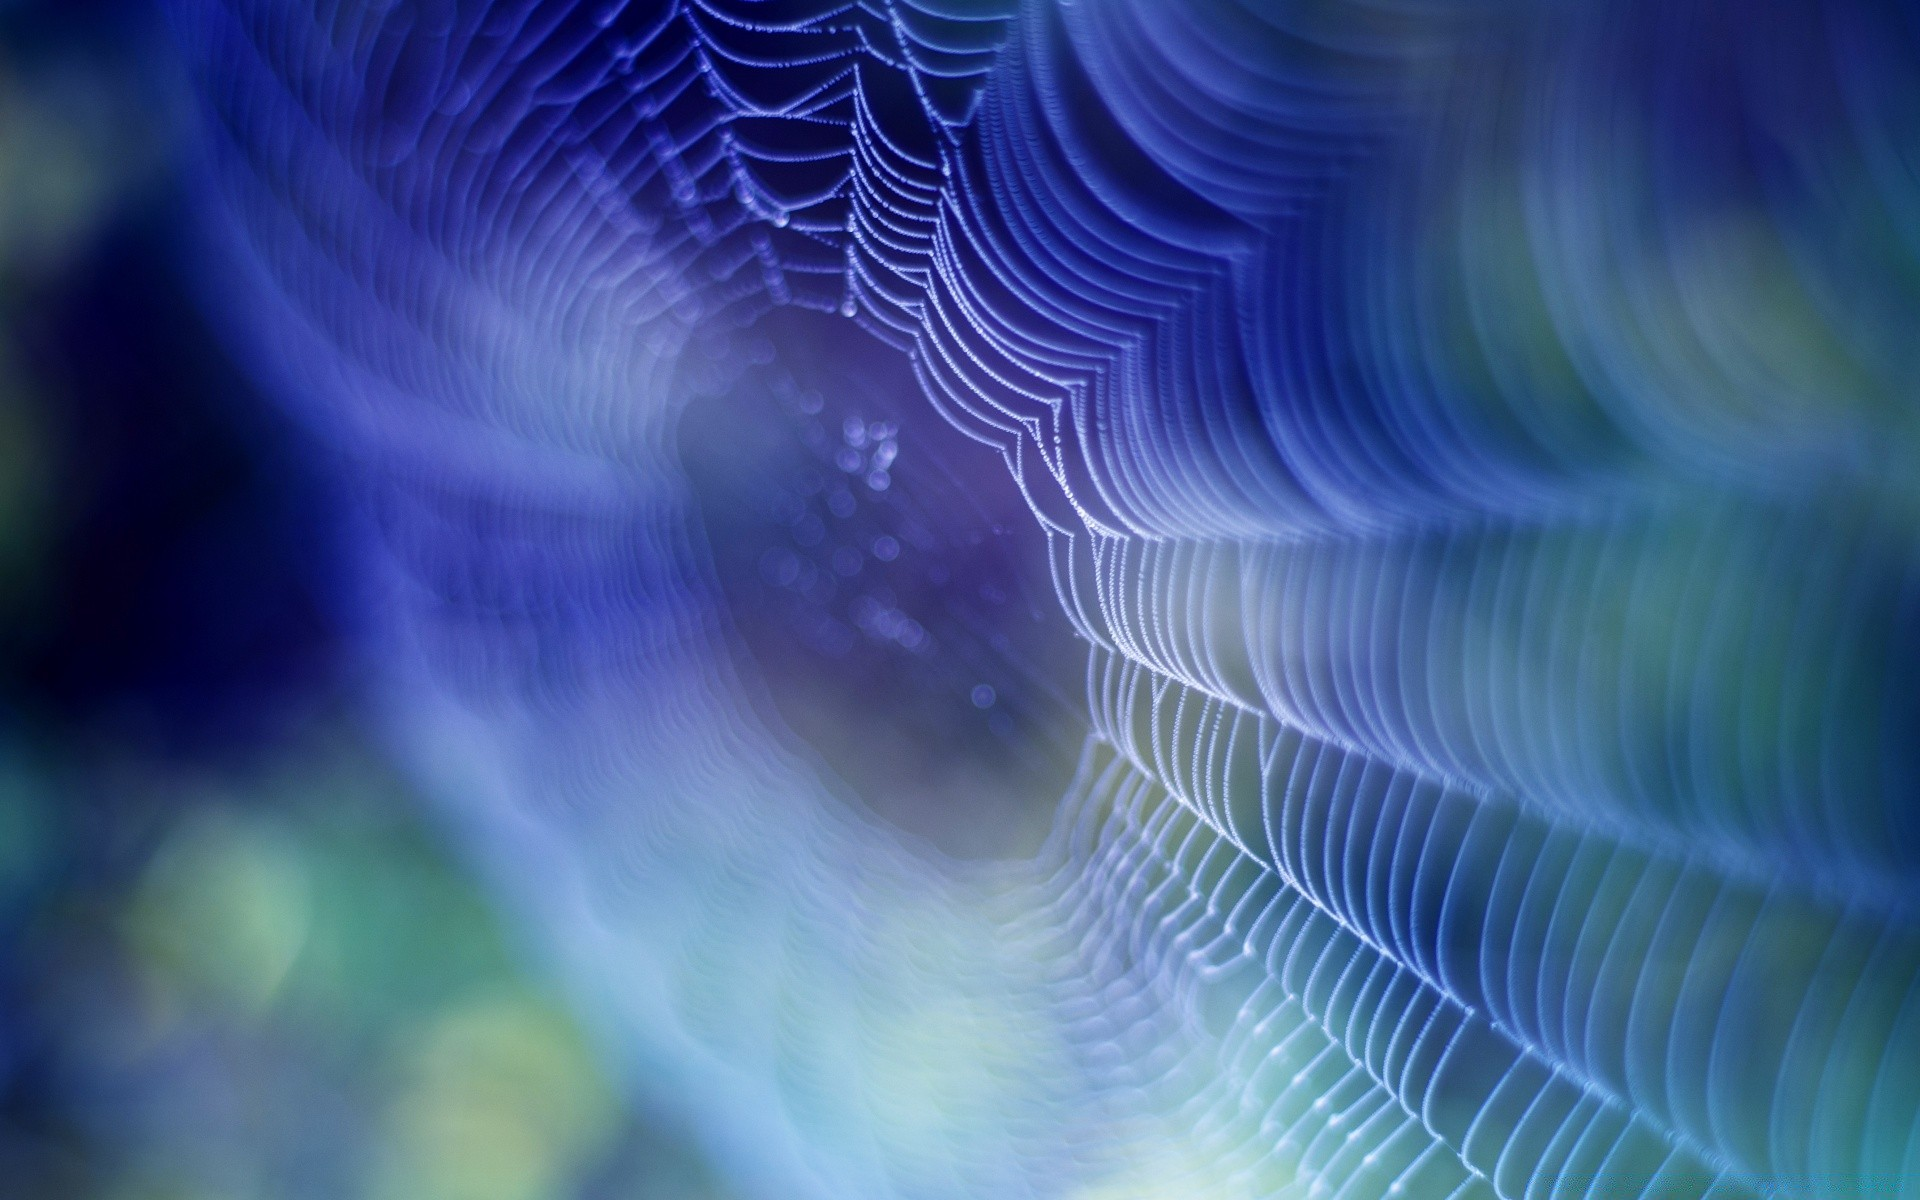 Spiderweb Background IPhone Wallpapers For Free